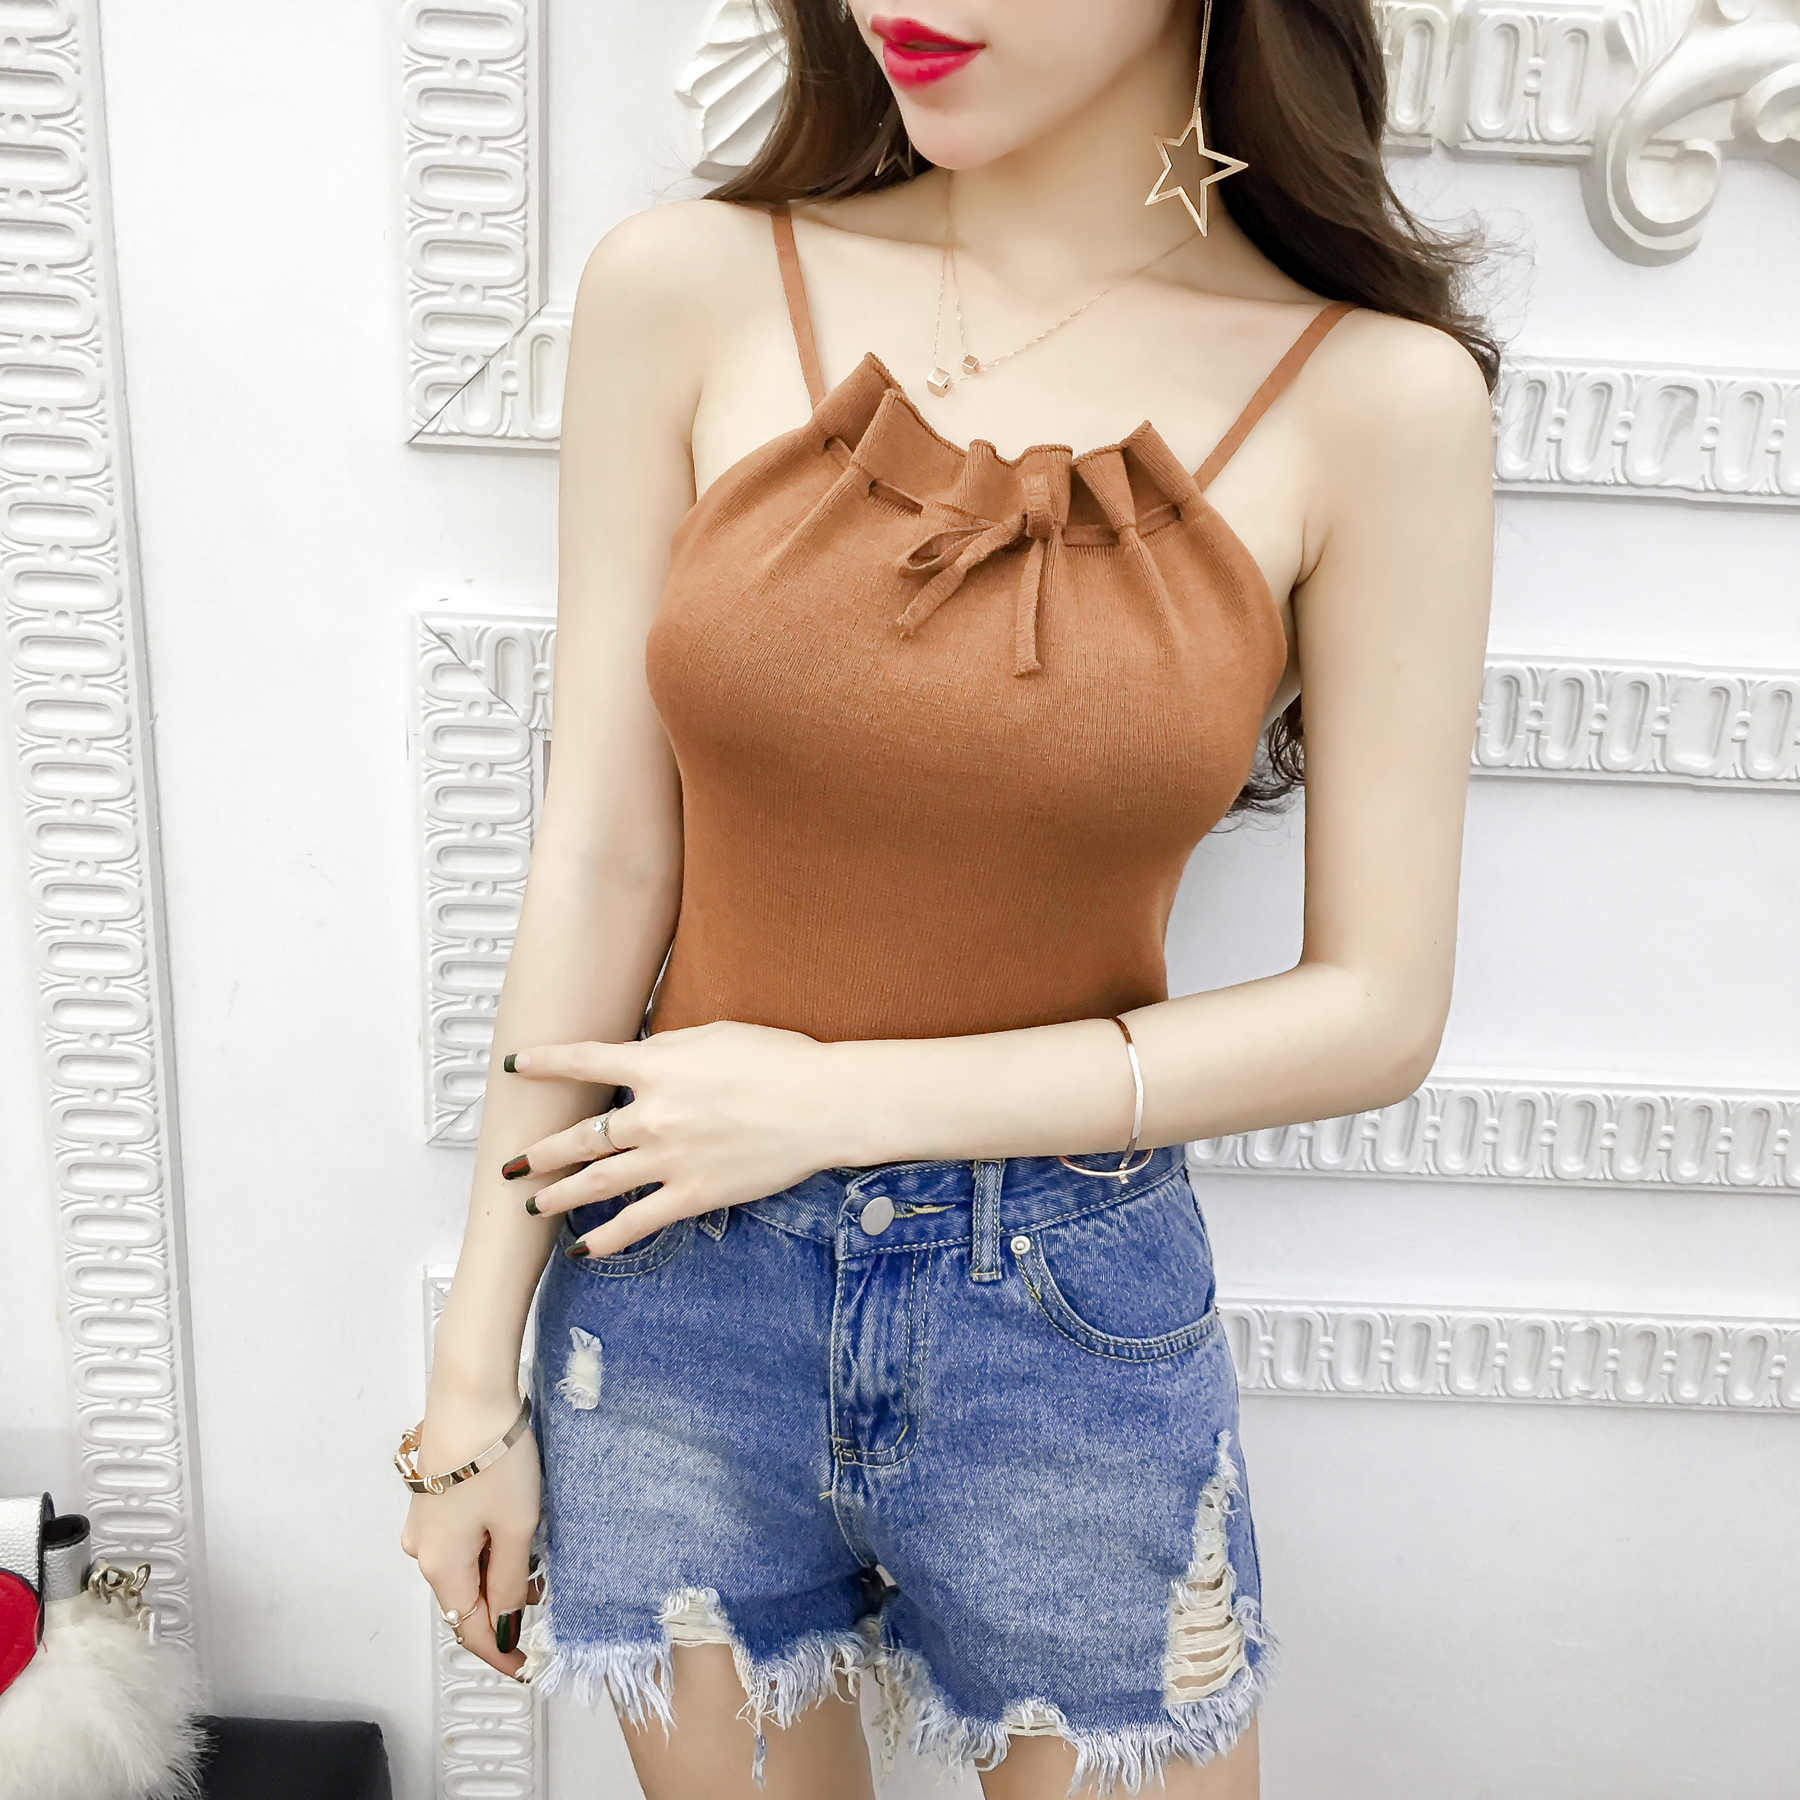 fb31abd9c21 Summer Women Fashion Slim Knitting Off-shoulder Pleated Camis Tops Girl  Knitted Tank Tops Sleeveless